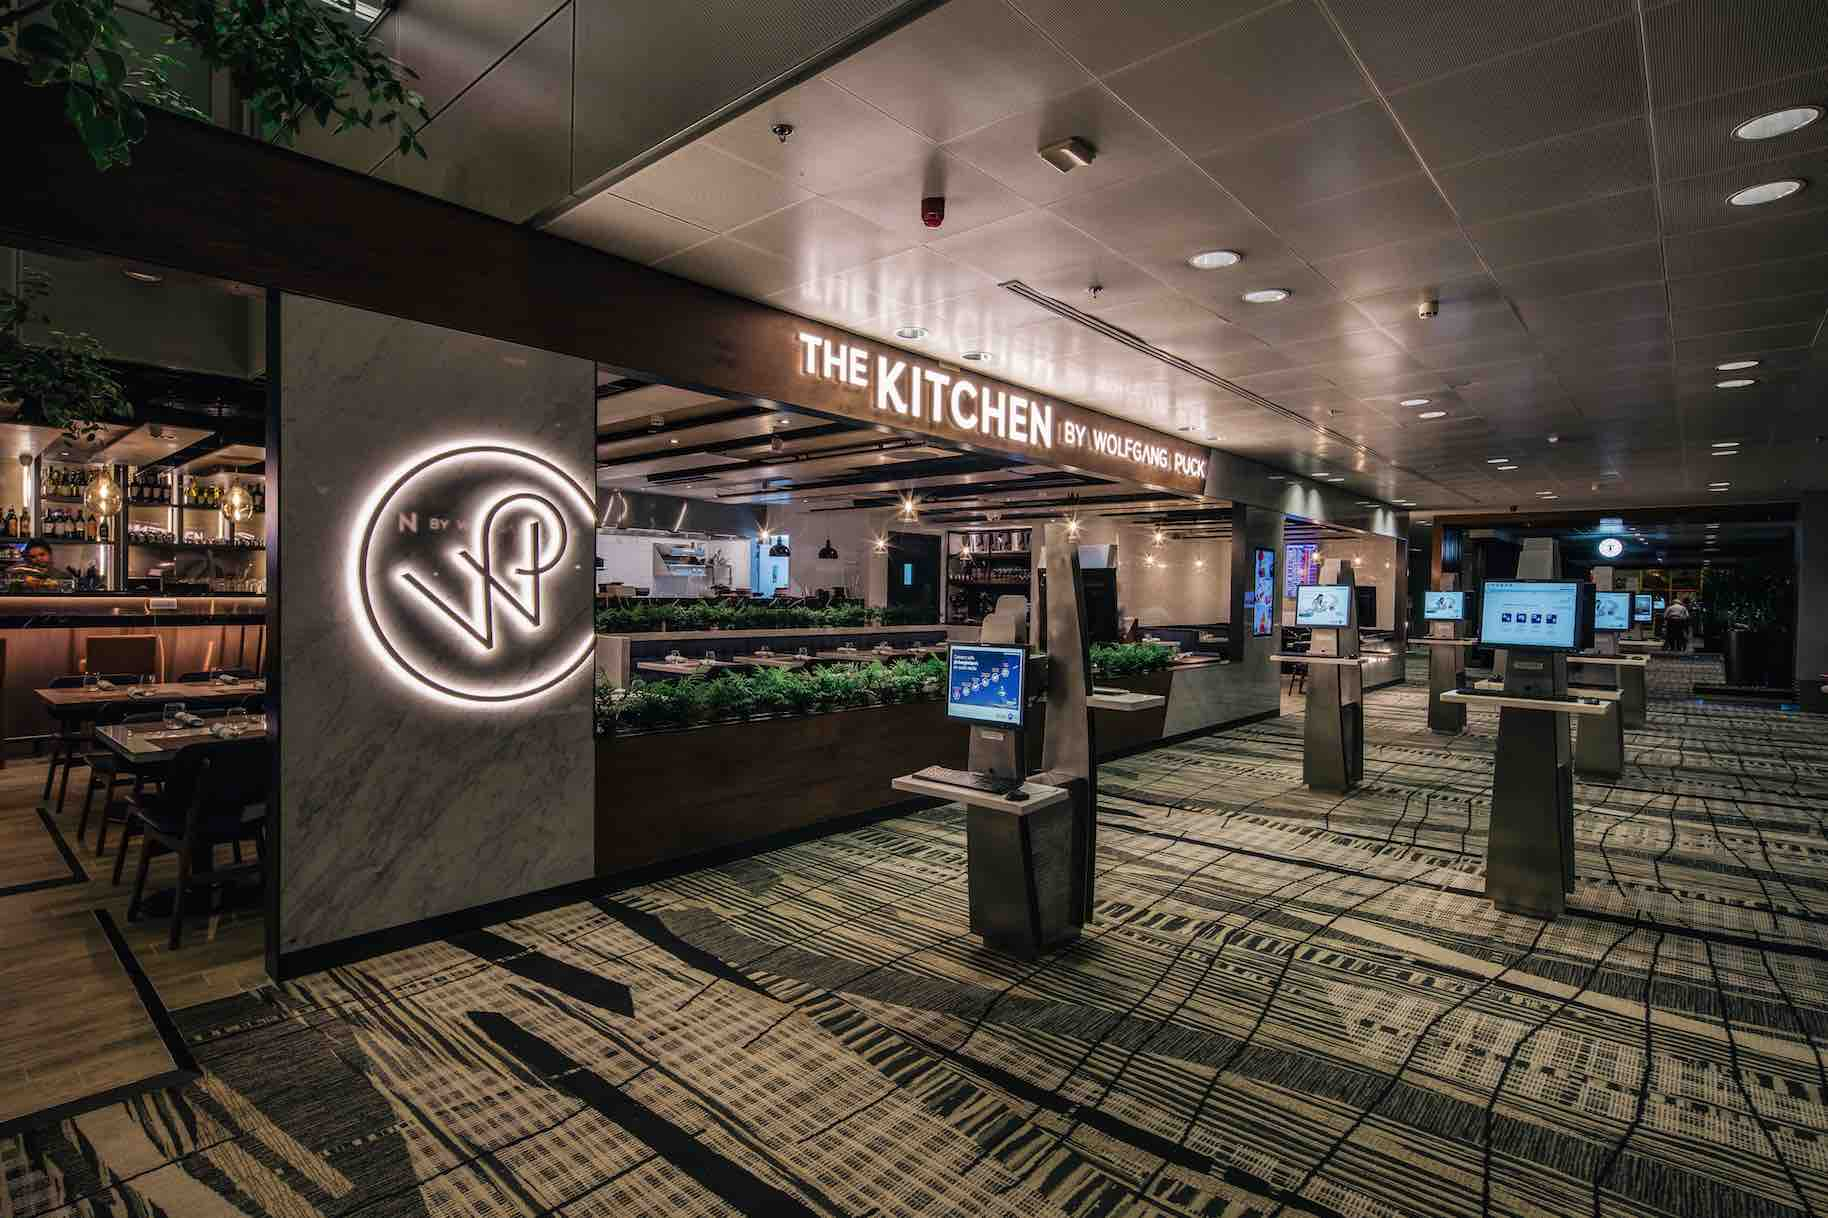 the kitchen by wolfgang puck now at singapore changi airport chef wolfgang puck shared i m excited to unveil my new restaurant in changi airport s t3 to the many visitors travelling through singapore